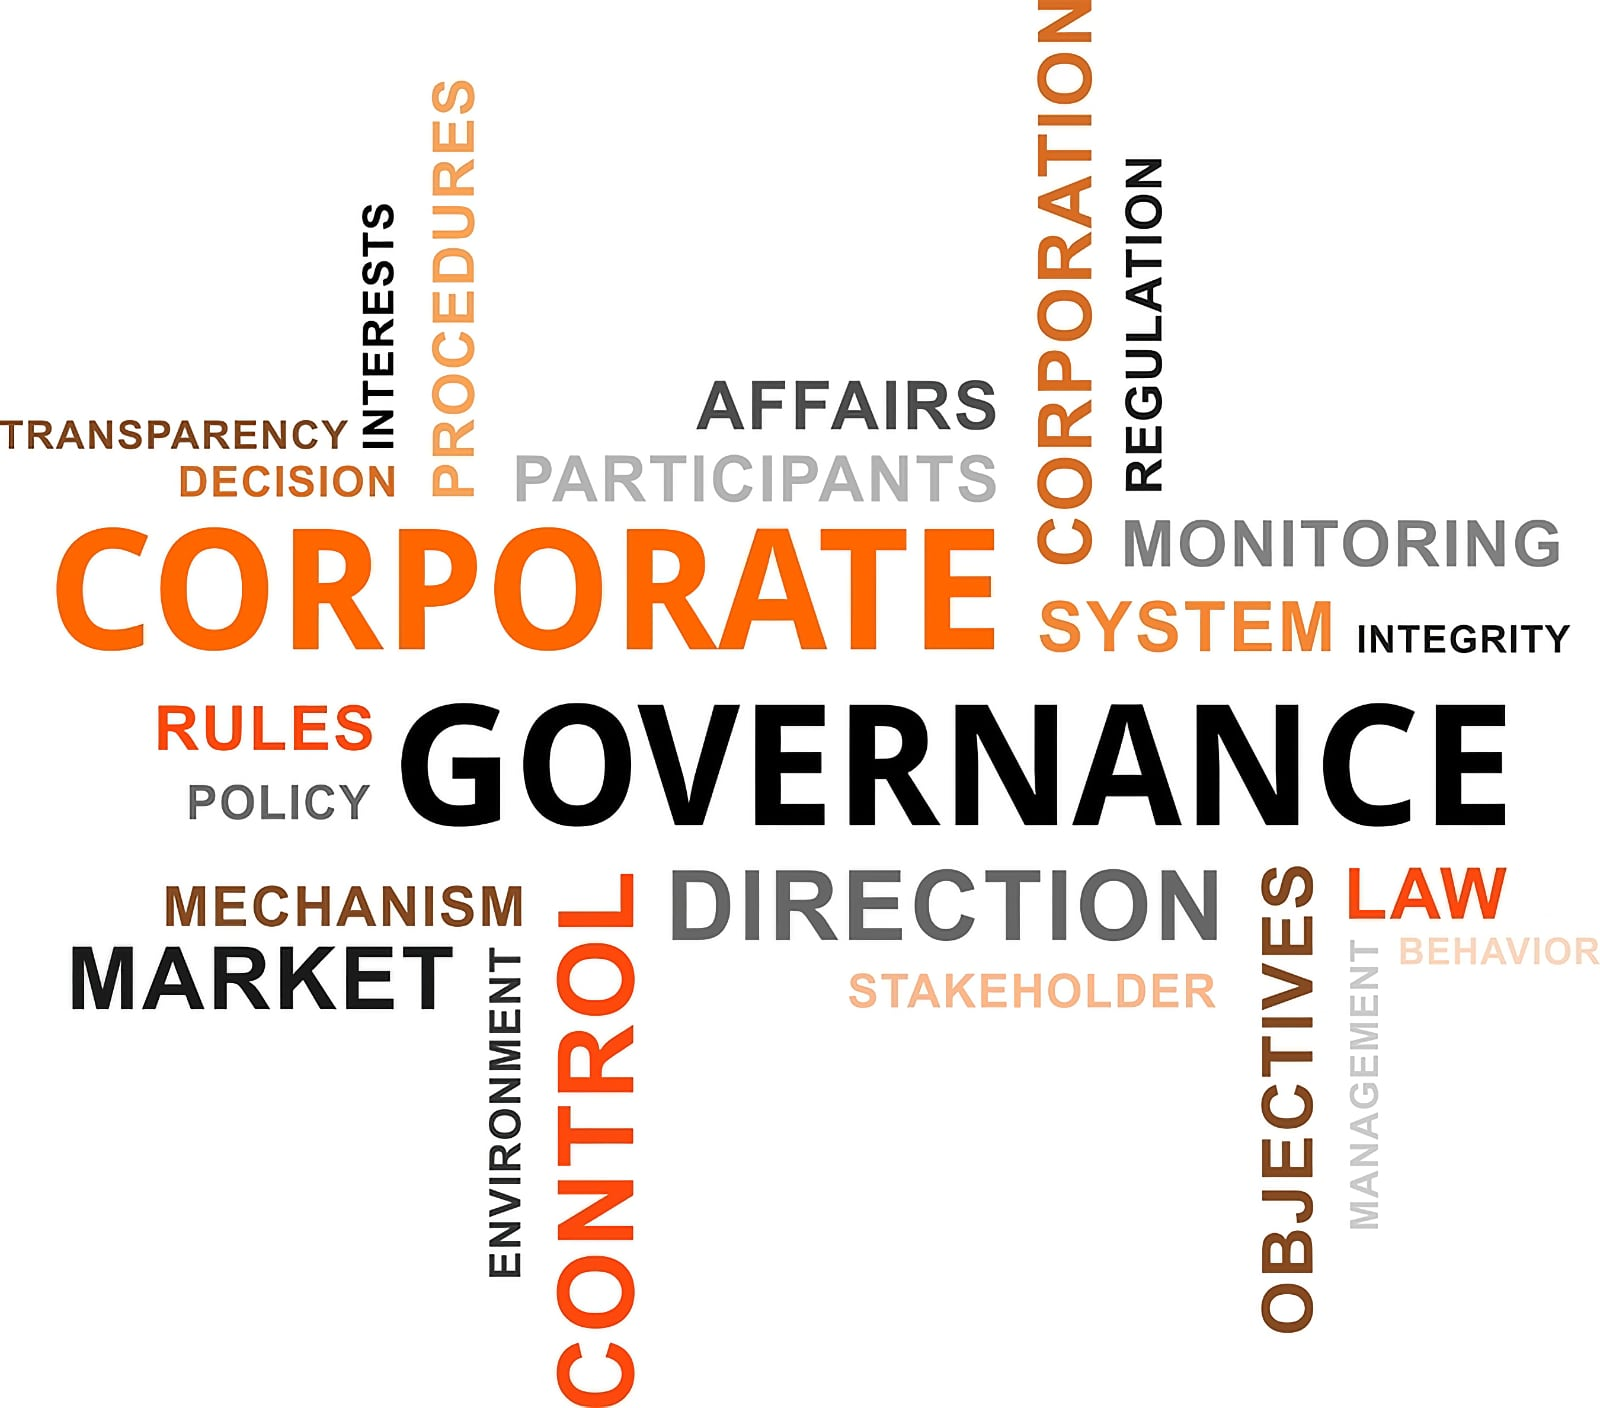 Word cloud image centred on the phrase Corporate Governance, plus other relevant words and phrases used